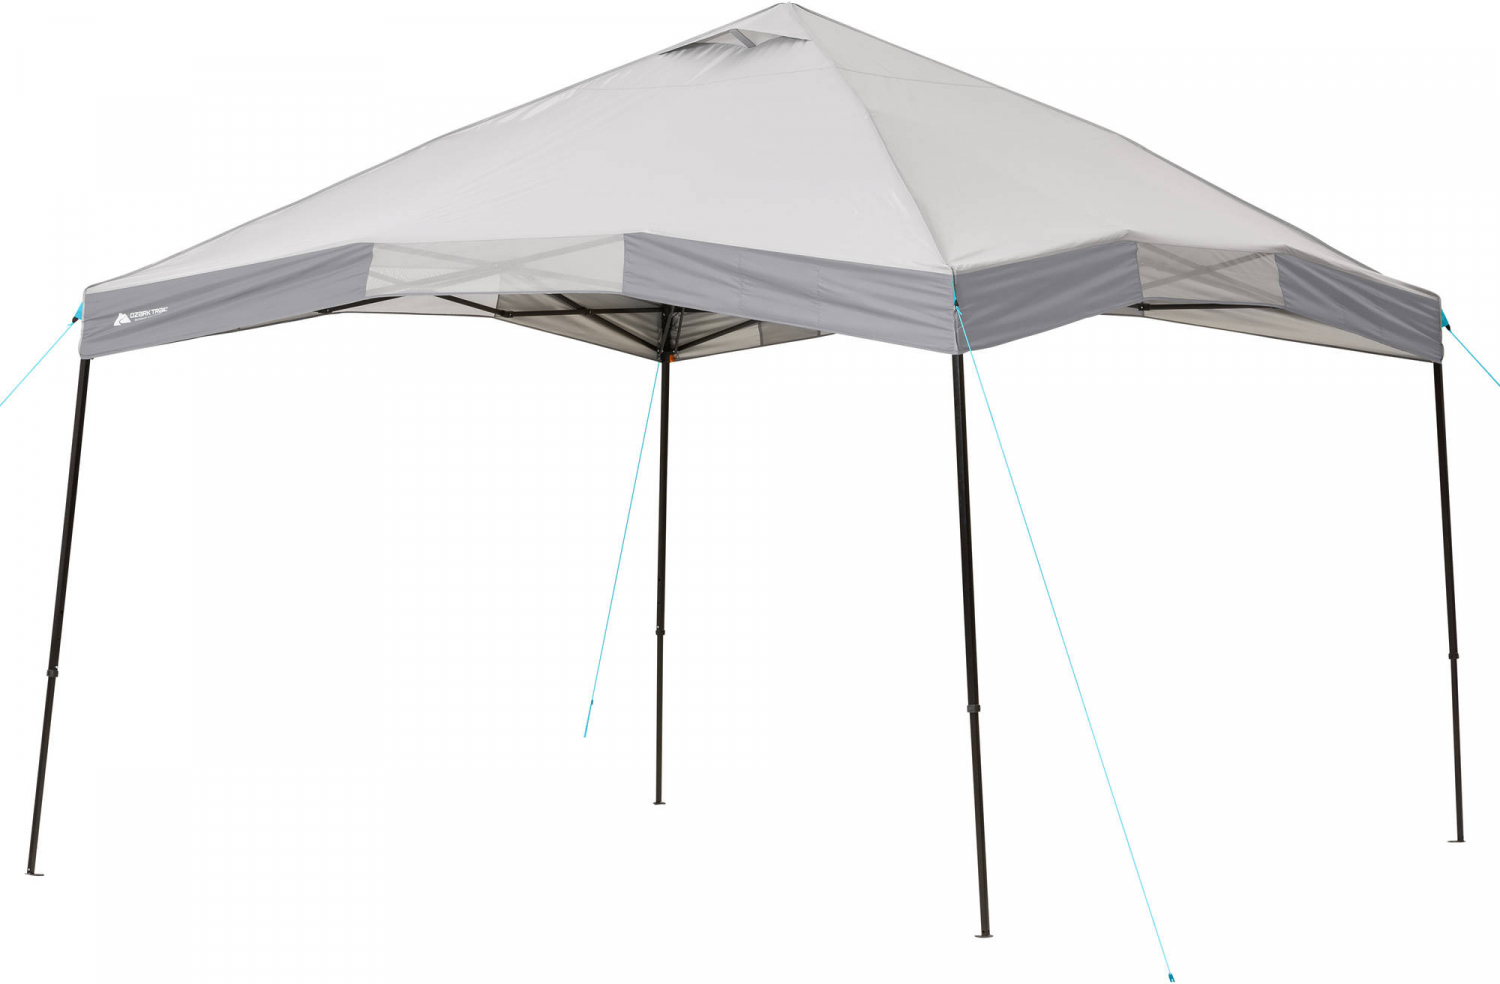 Details about 12 x 12 Instant Canopy Pop-Up Outdoor Sport Tailgate/Picnic  Heavy Duty Durable